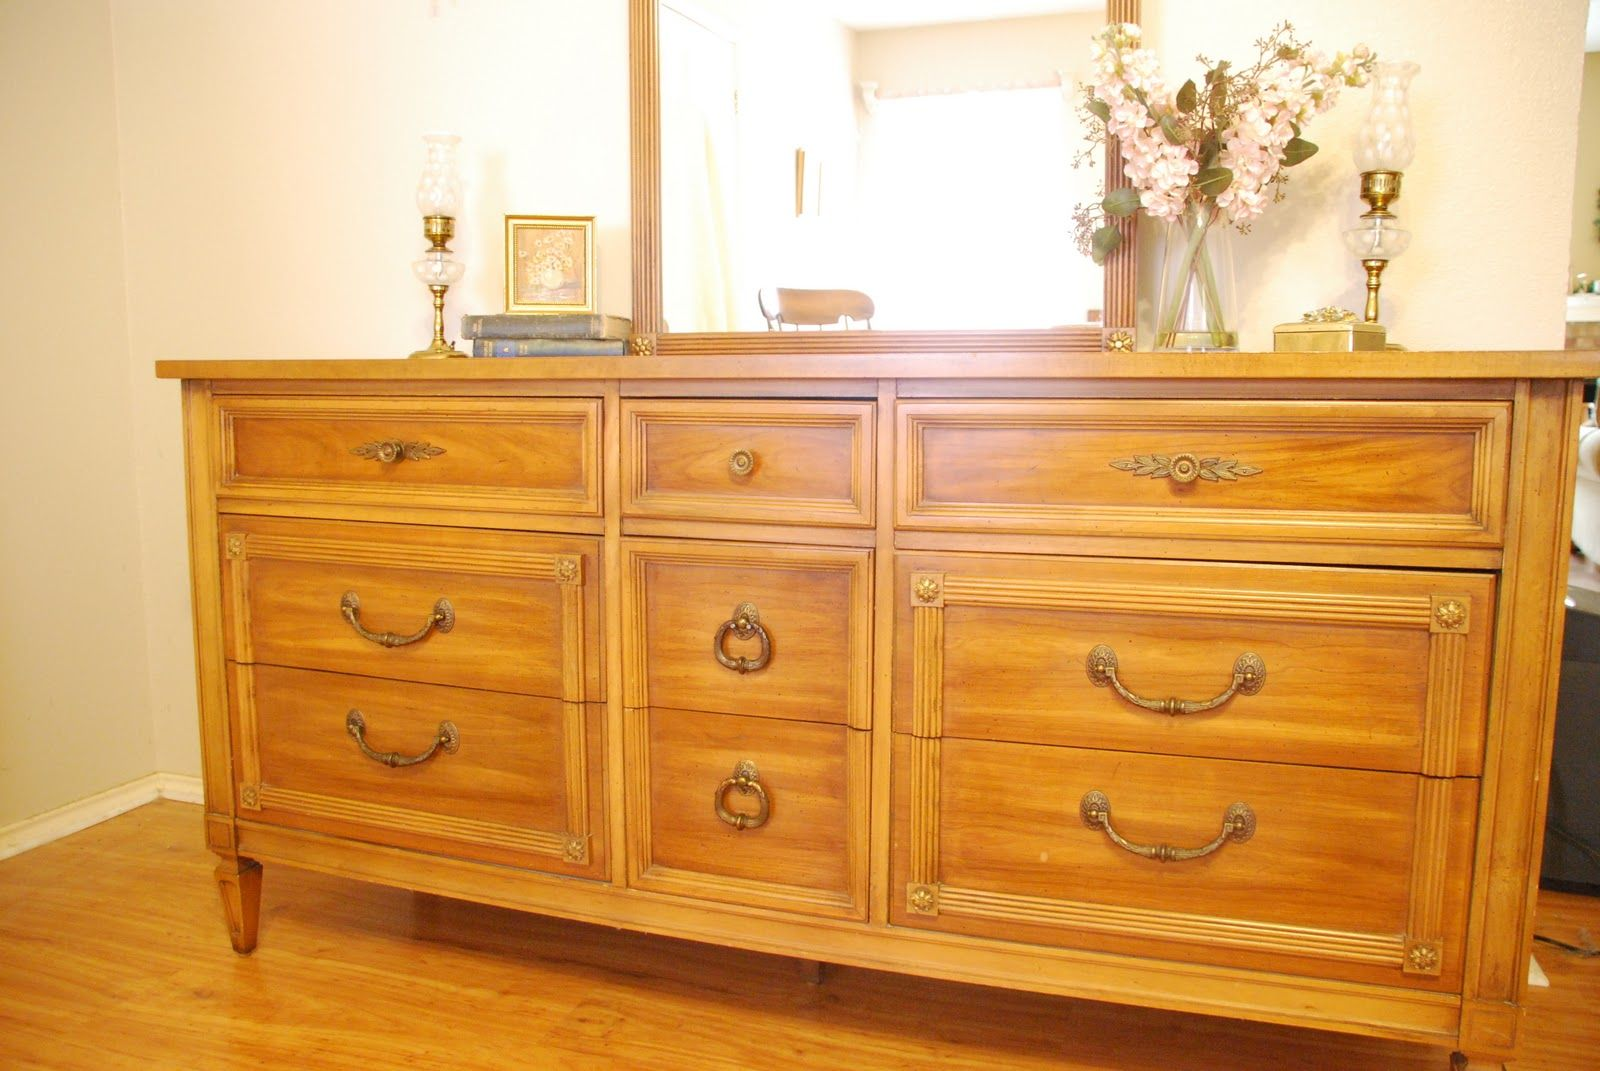 Affordable thomasville bedroom furniture with bedroom vanity storage